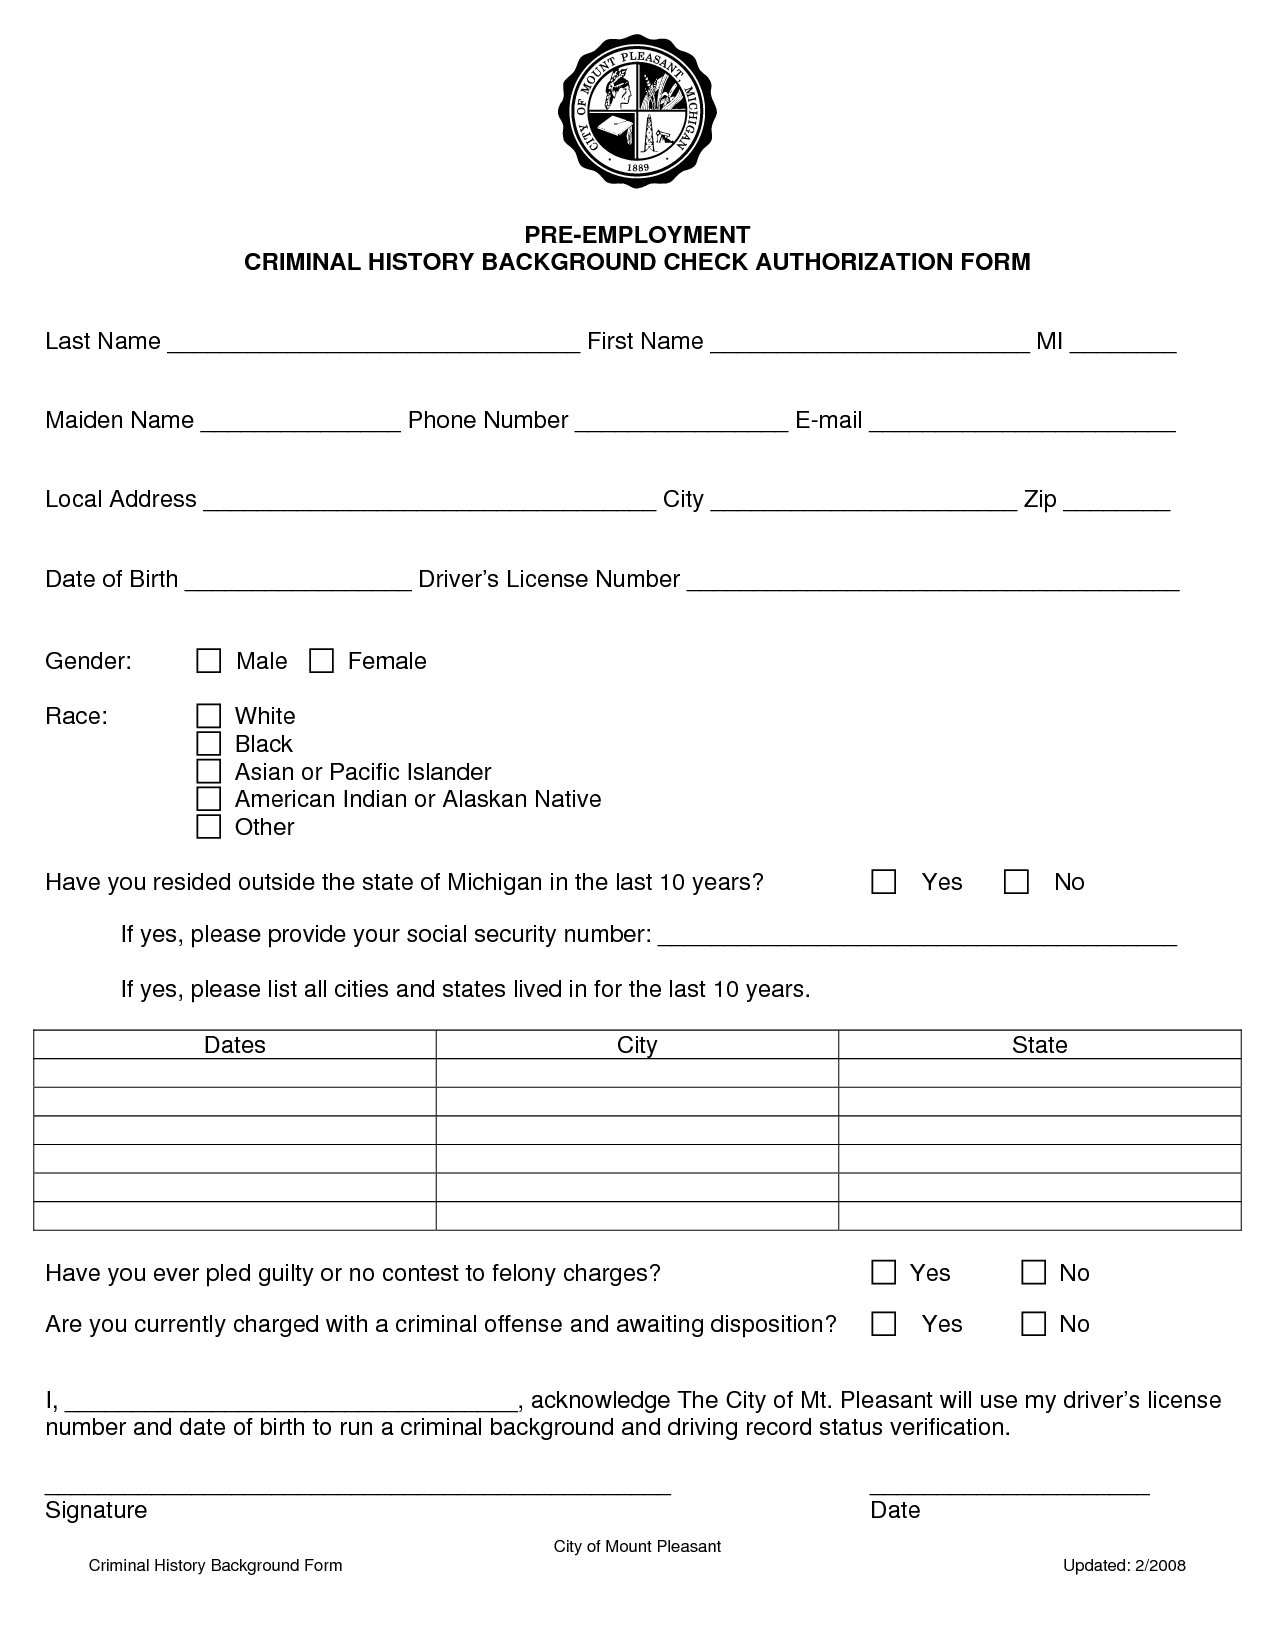 Employment Background Check Consent Form Background Checks Save